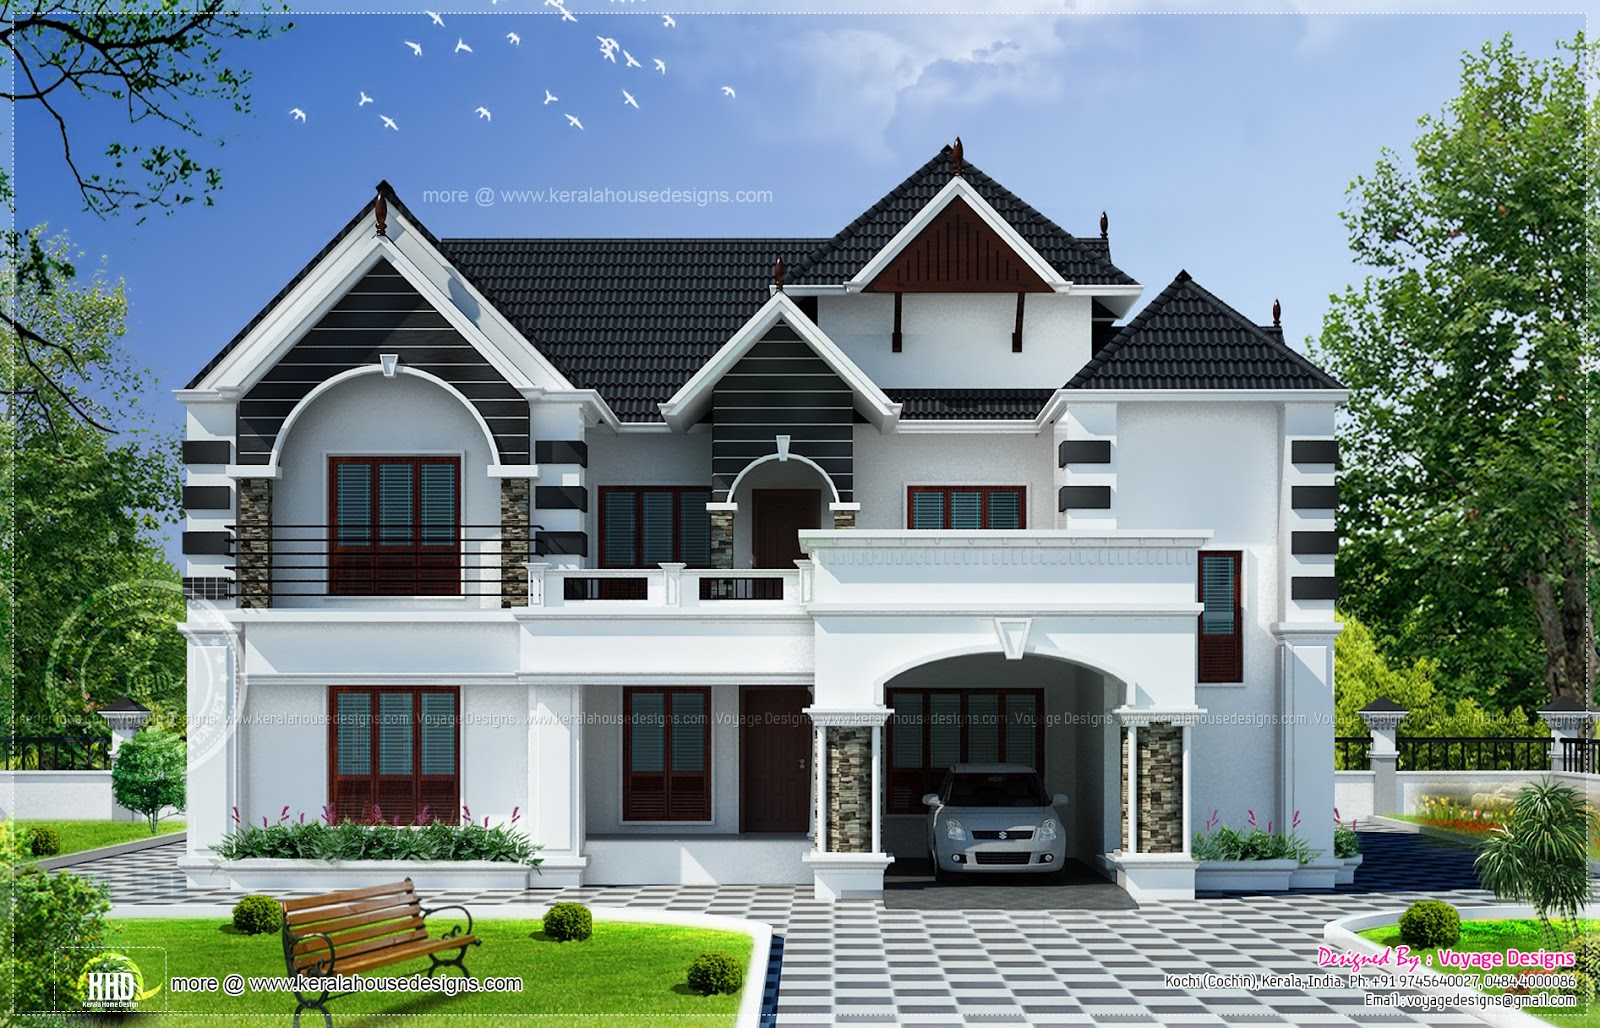 4 bedroom colonial style house kerala home design and for Indian small house design 2 bedroom